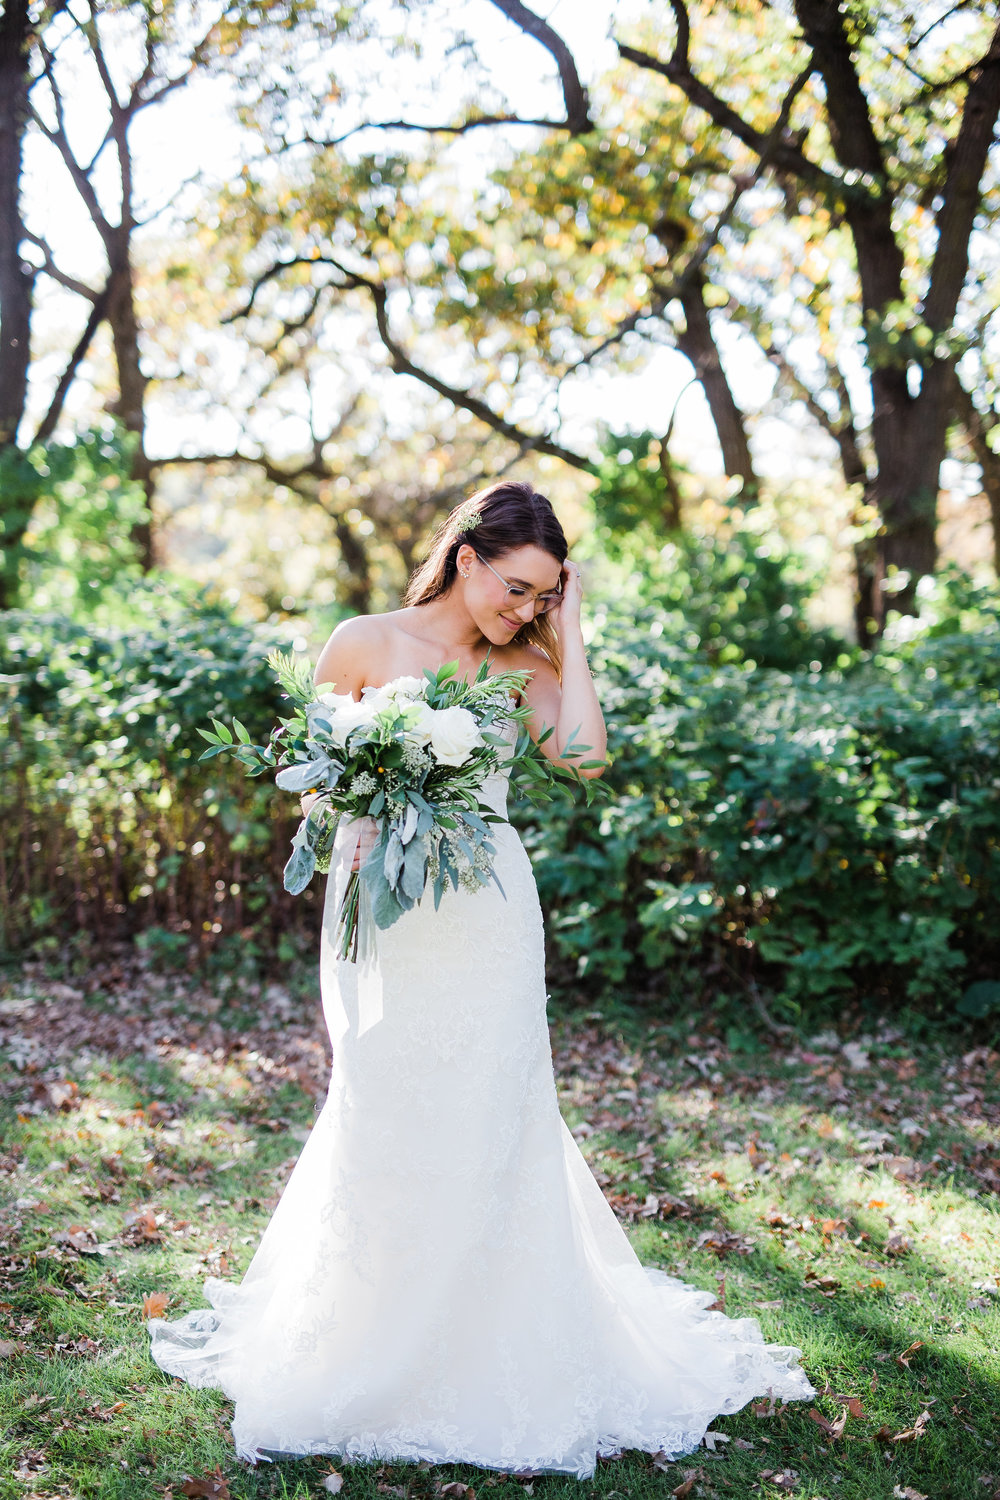 Beautiful bride portraits traveling wedding photographers Minneapolis MN